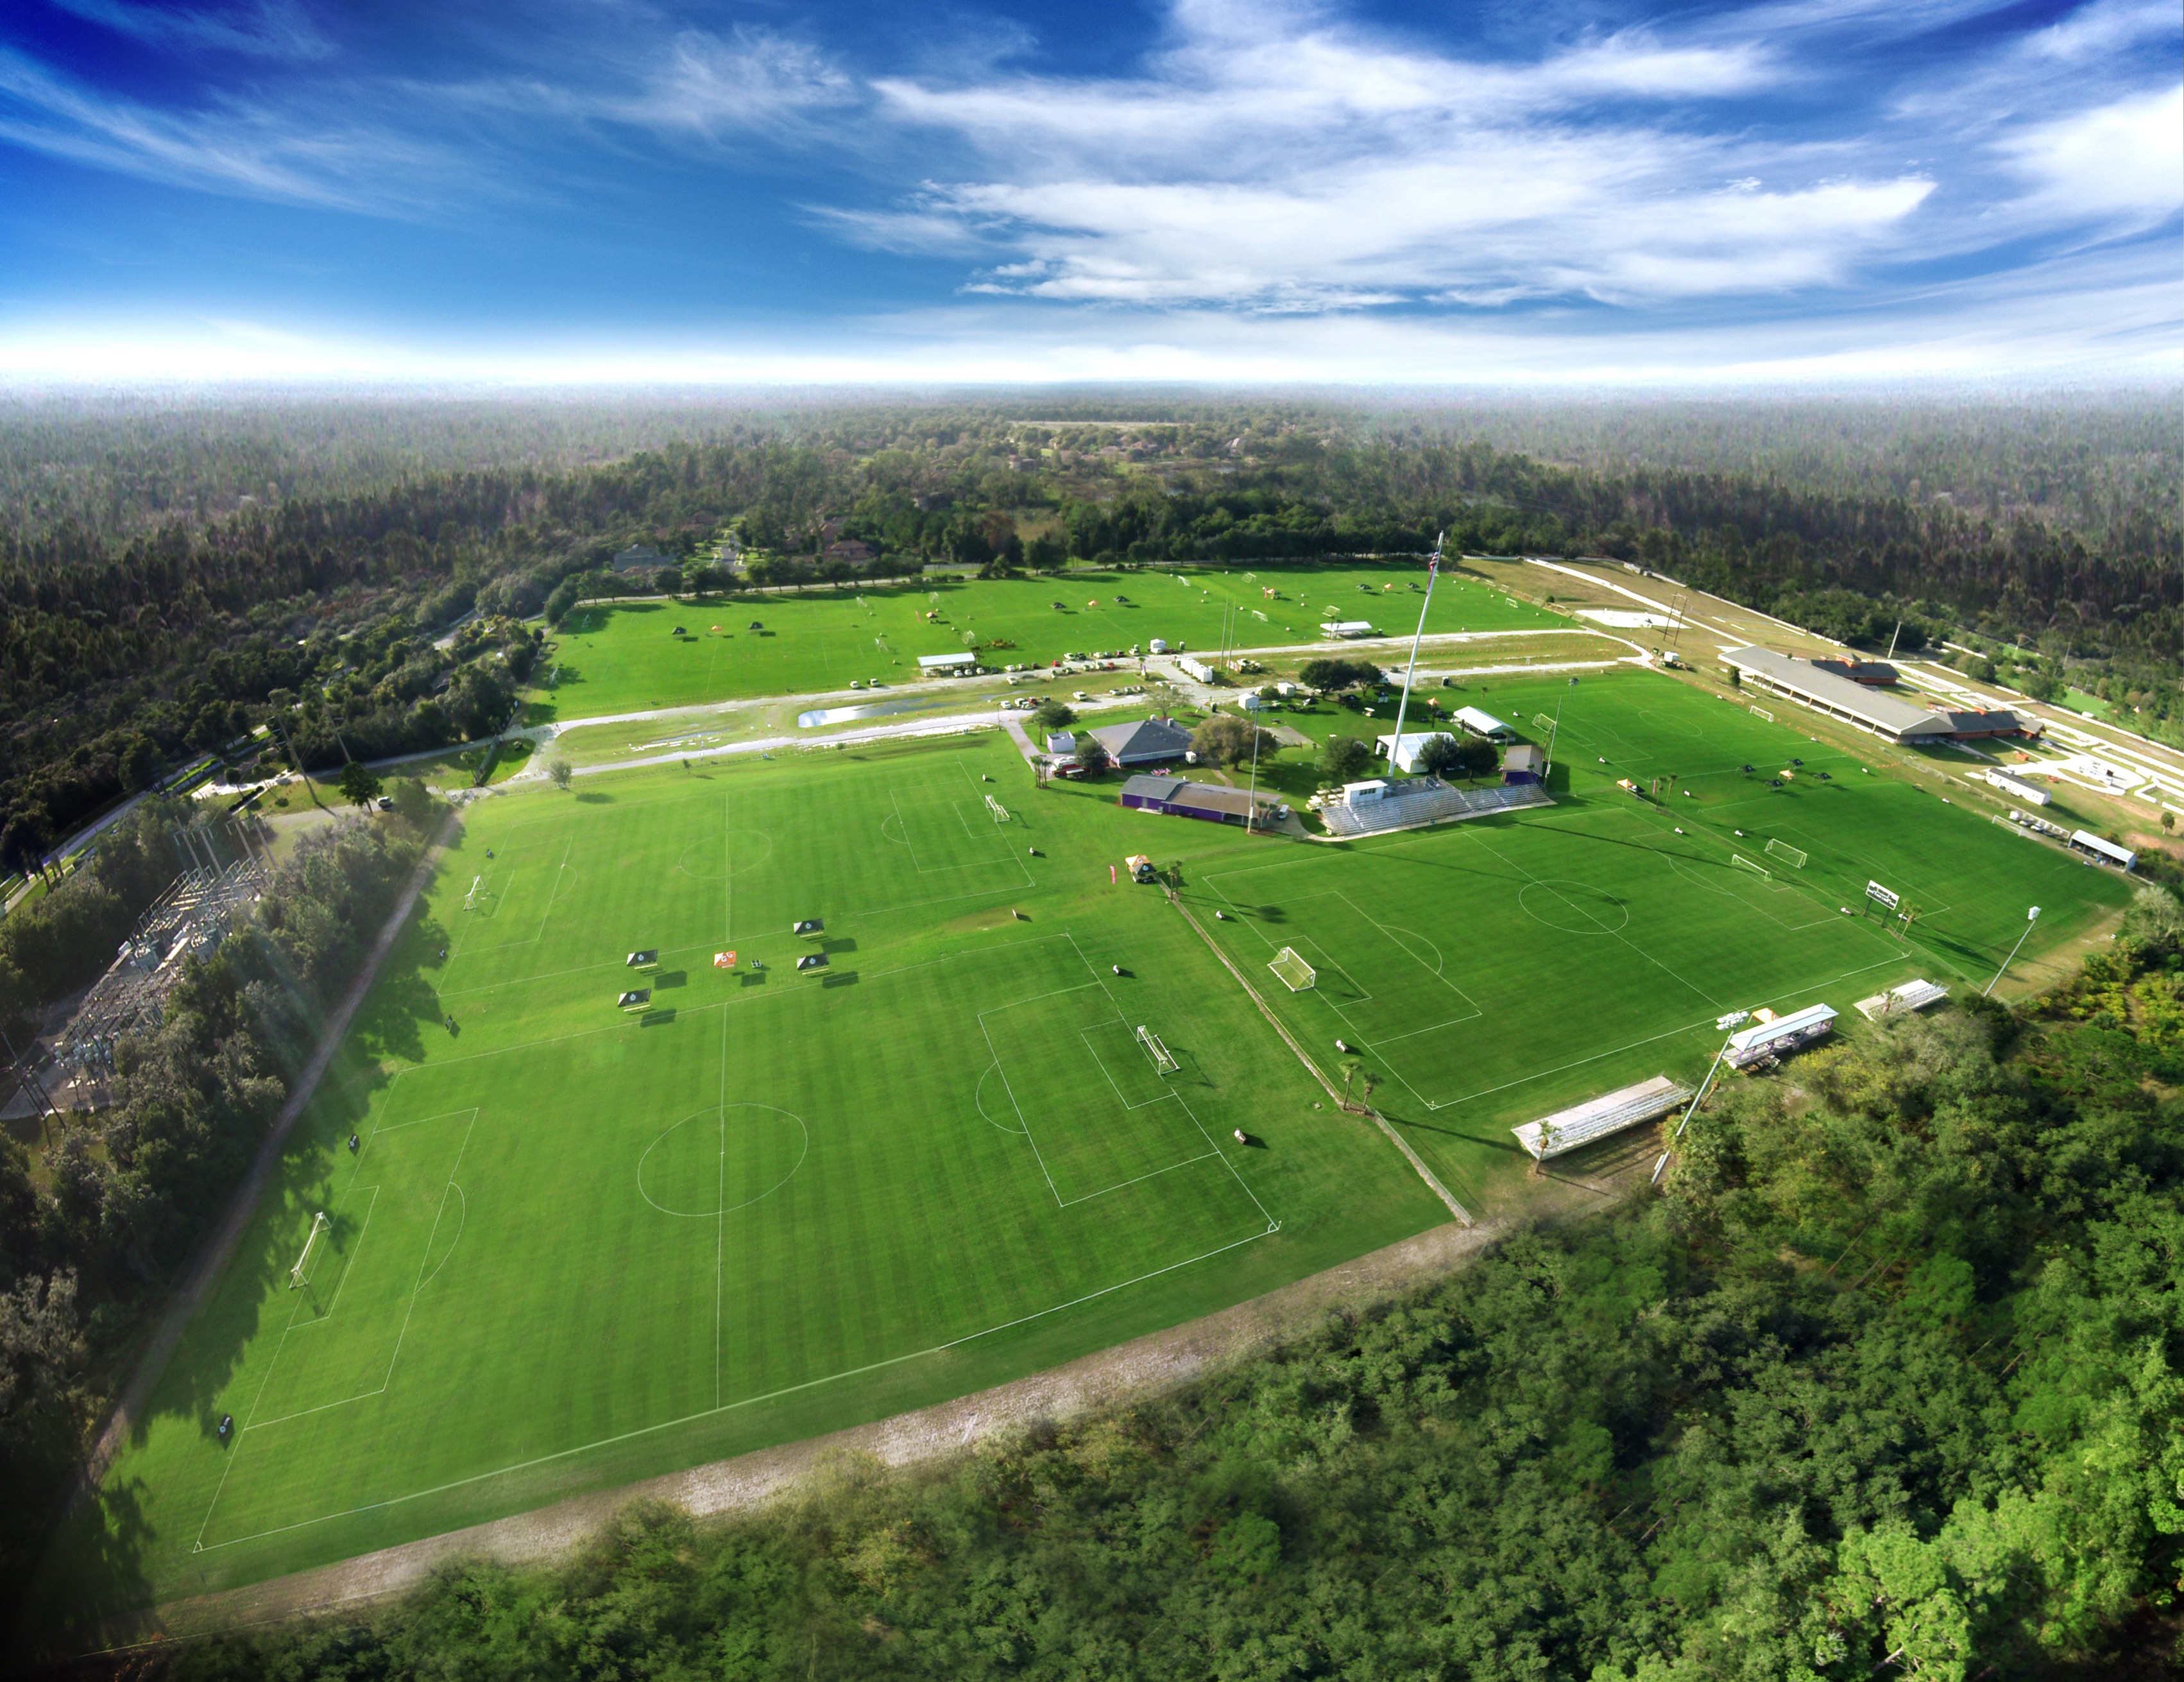 Seminole Soccer Complex in Sanford, Florida